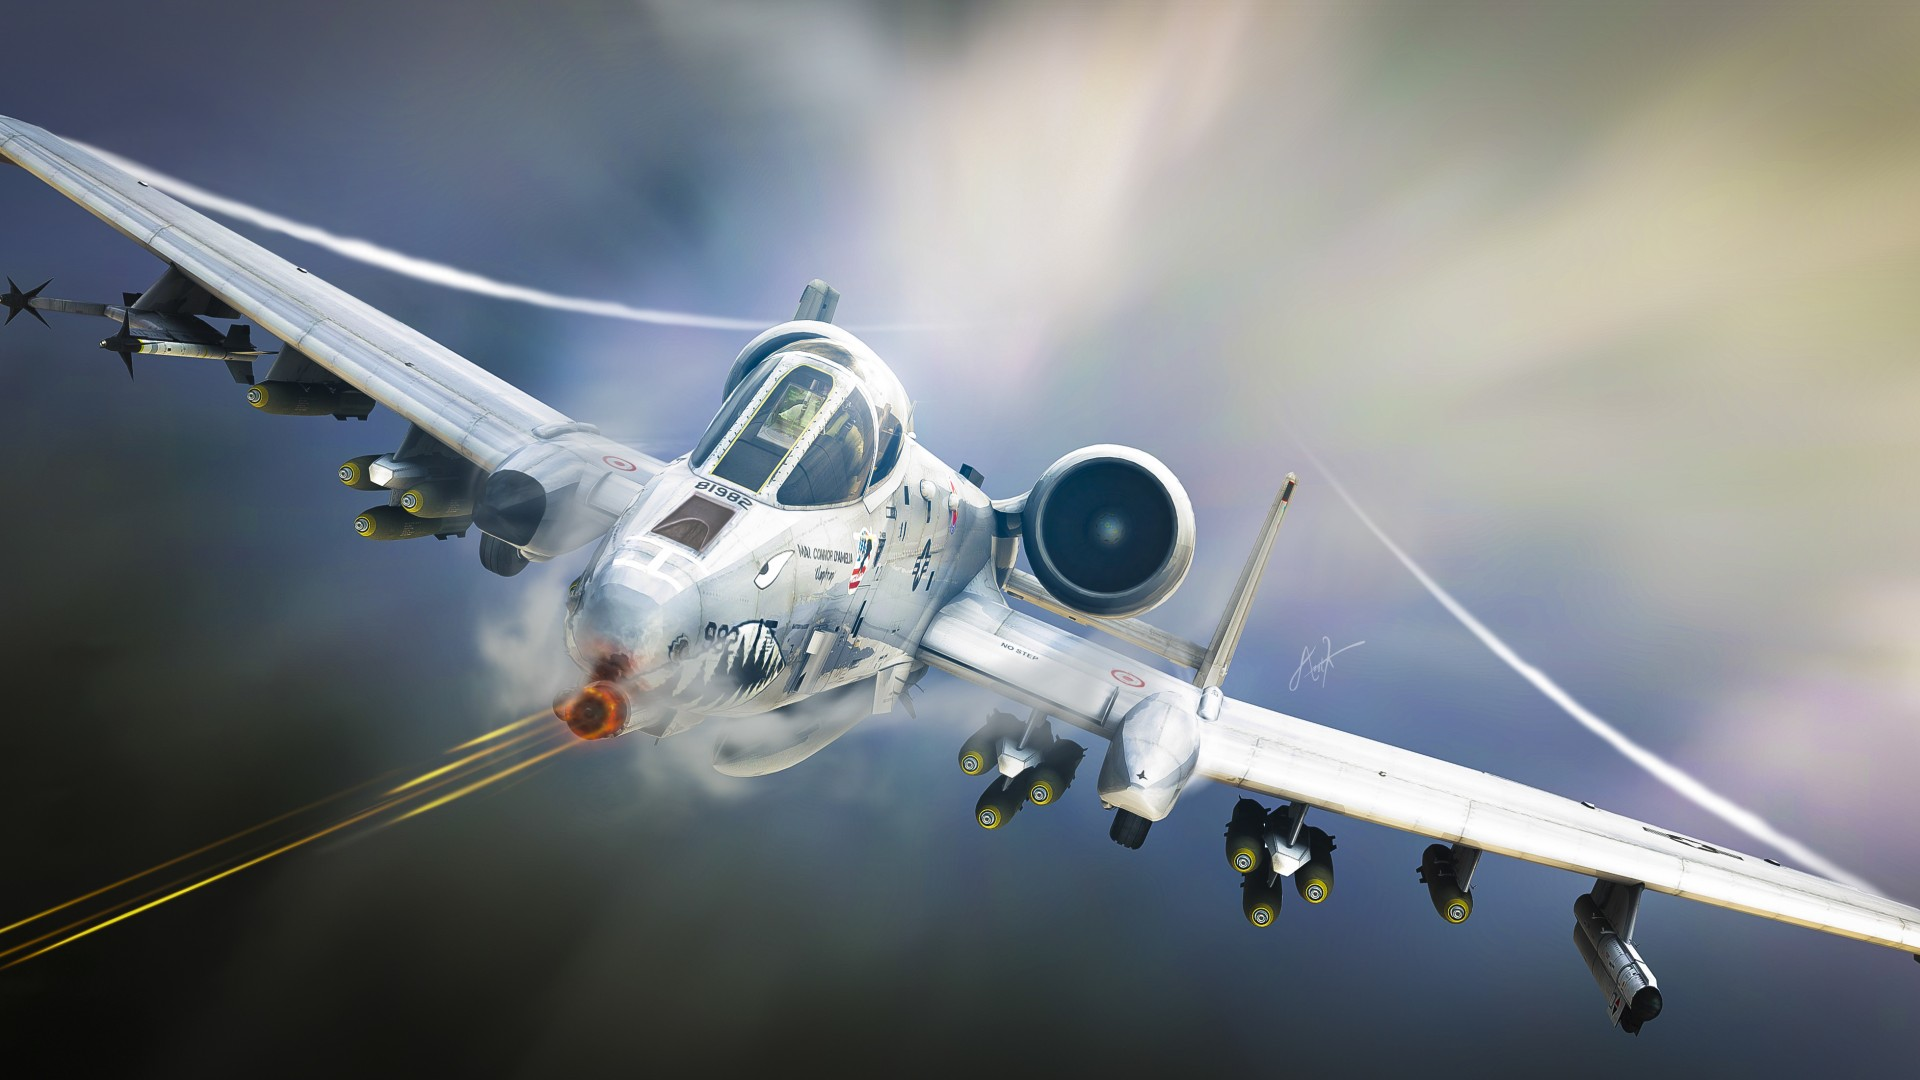 A-10 Tankbuster attack aircraft airplane aviation art military